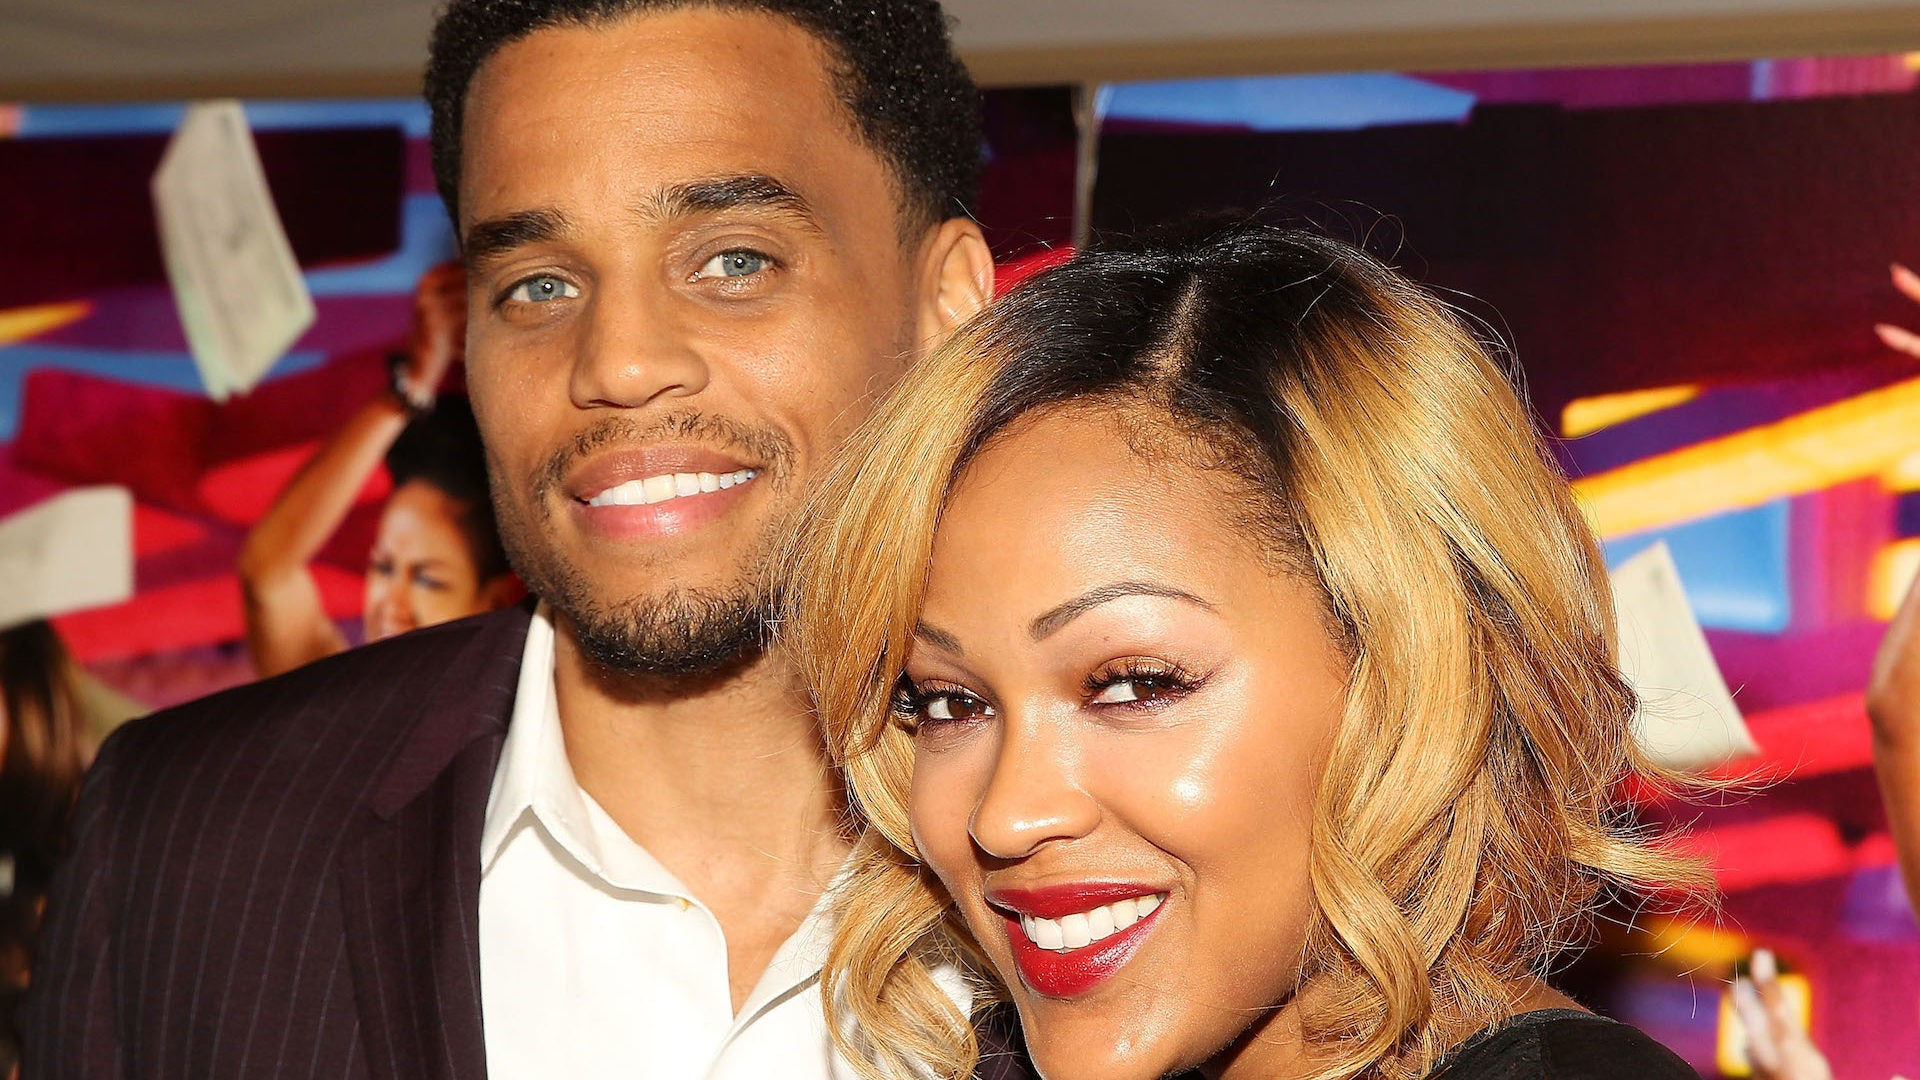 Michael Ealy And Megan Good Remember John Singleton: 'He Did Shift The Culture'